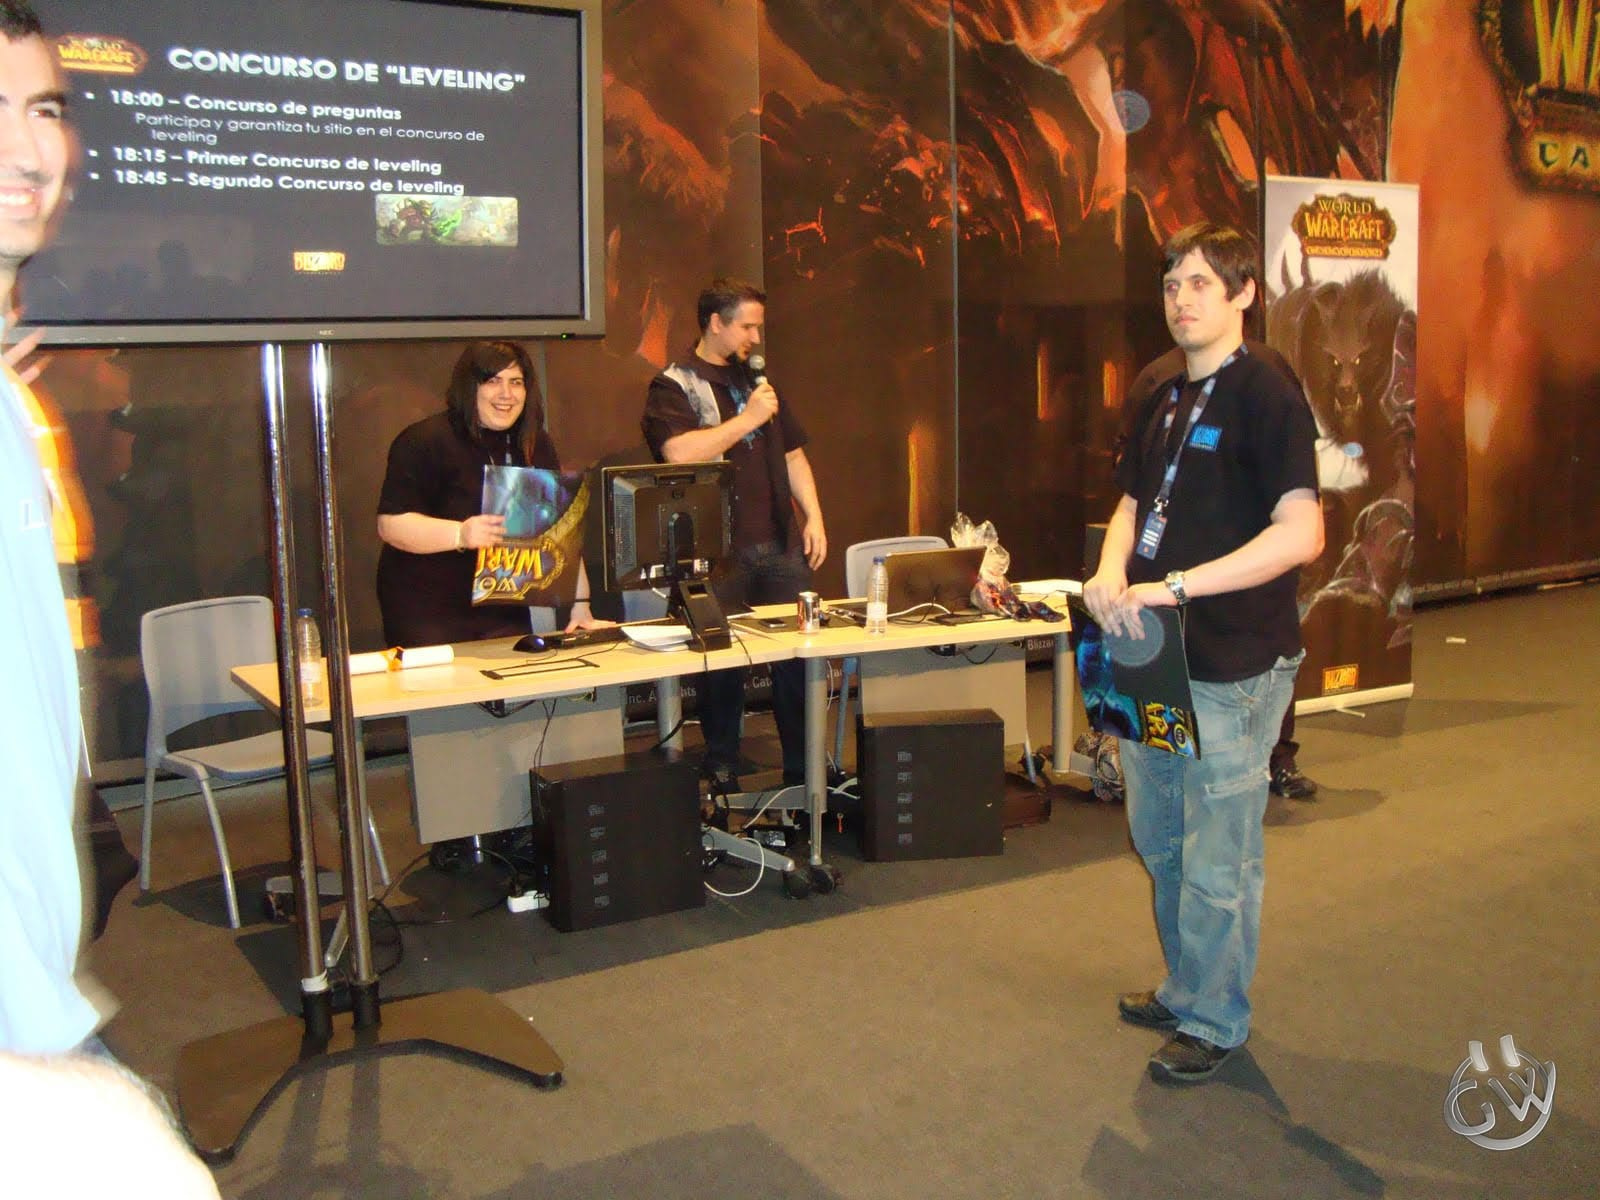 euskal_encounter18-08